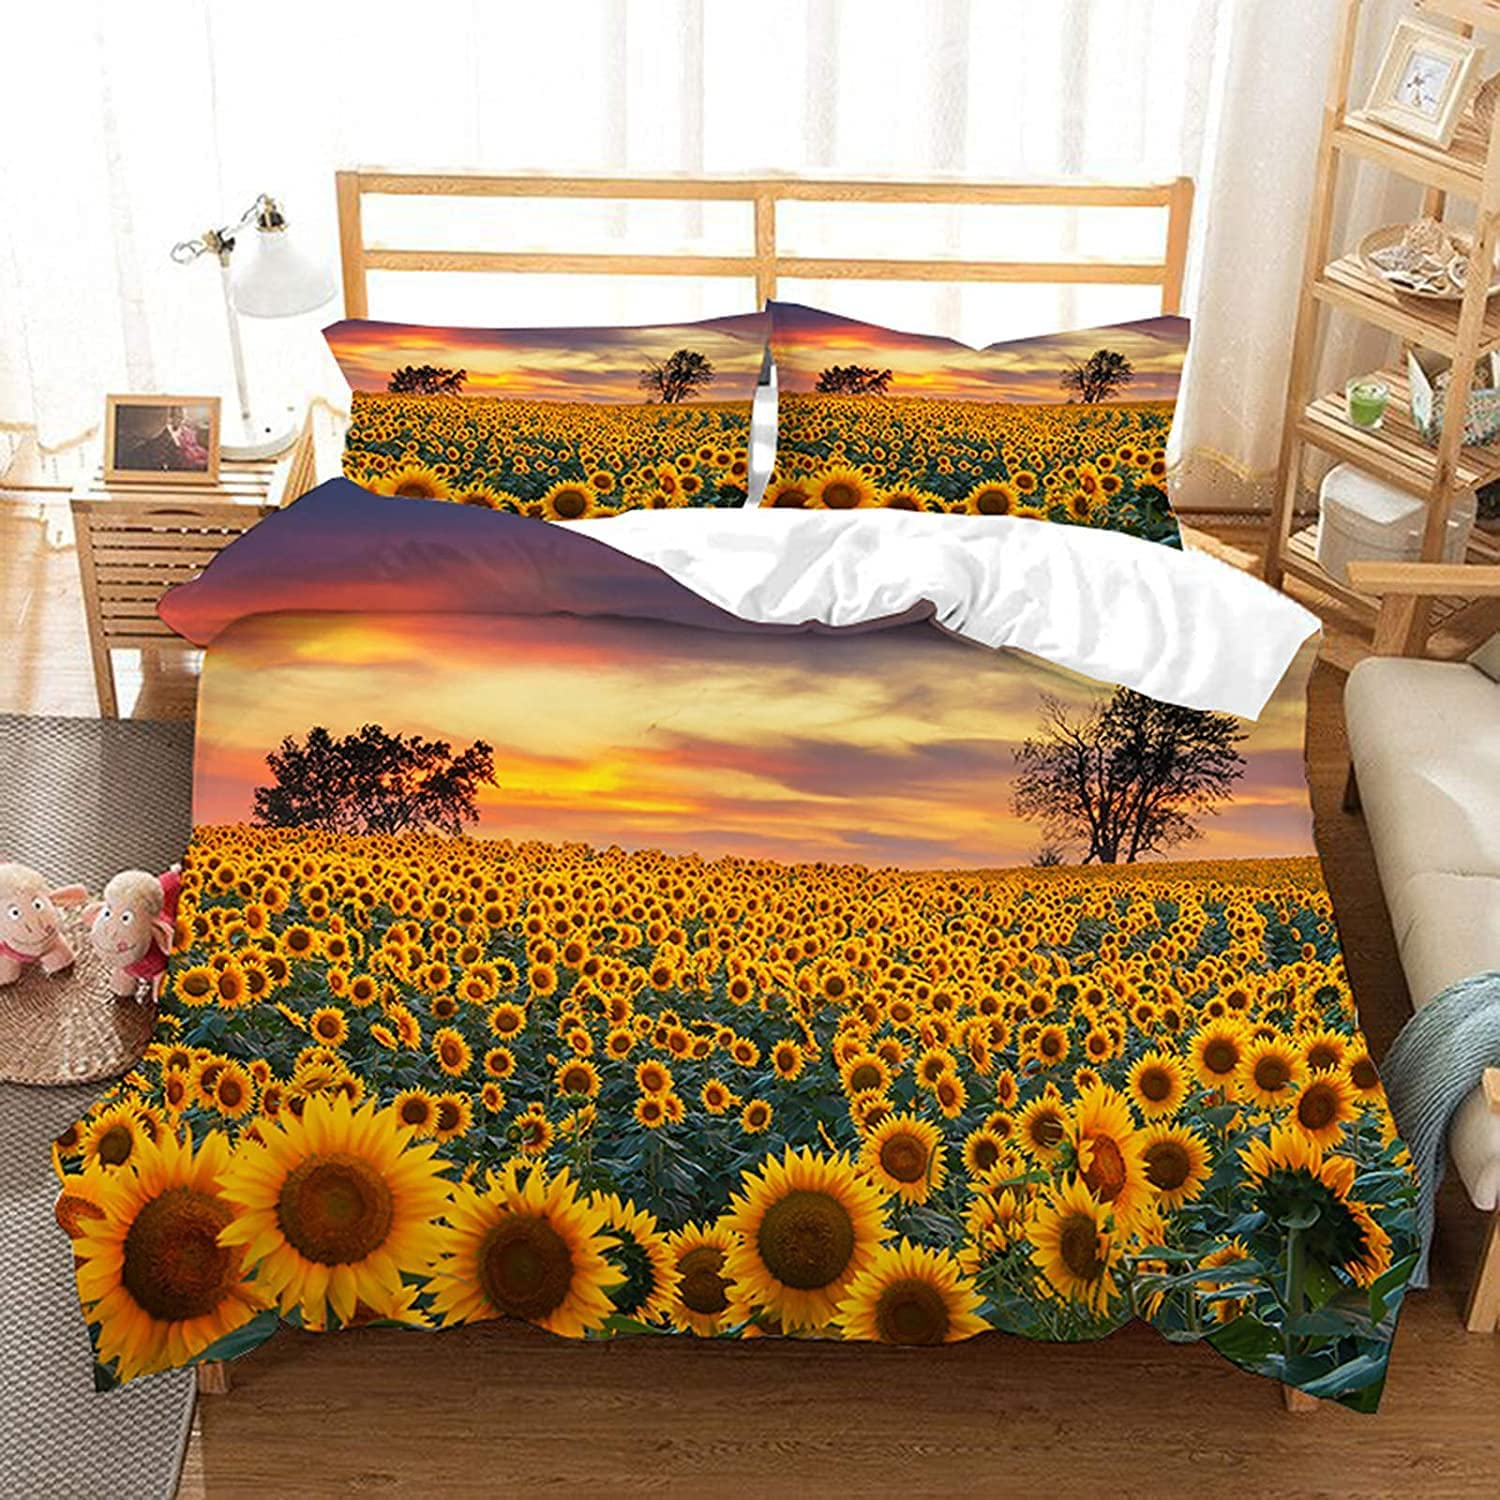 Tianzhihe Sunflower Max 76% OFF Duvet Cover Sets Twin Floral P 2 Size Yellow Max 83% OFF